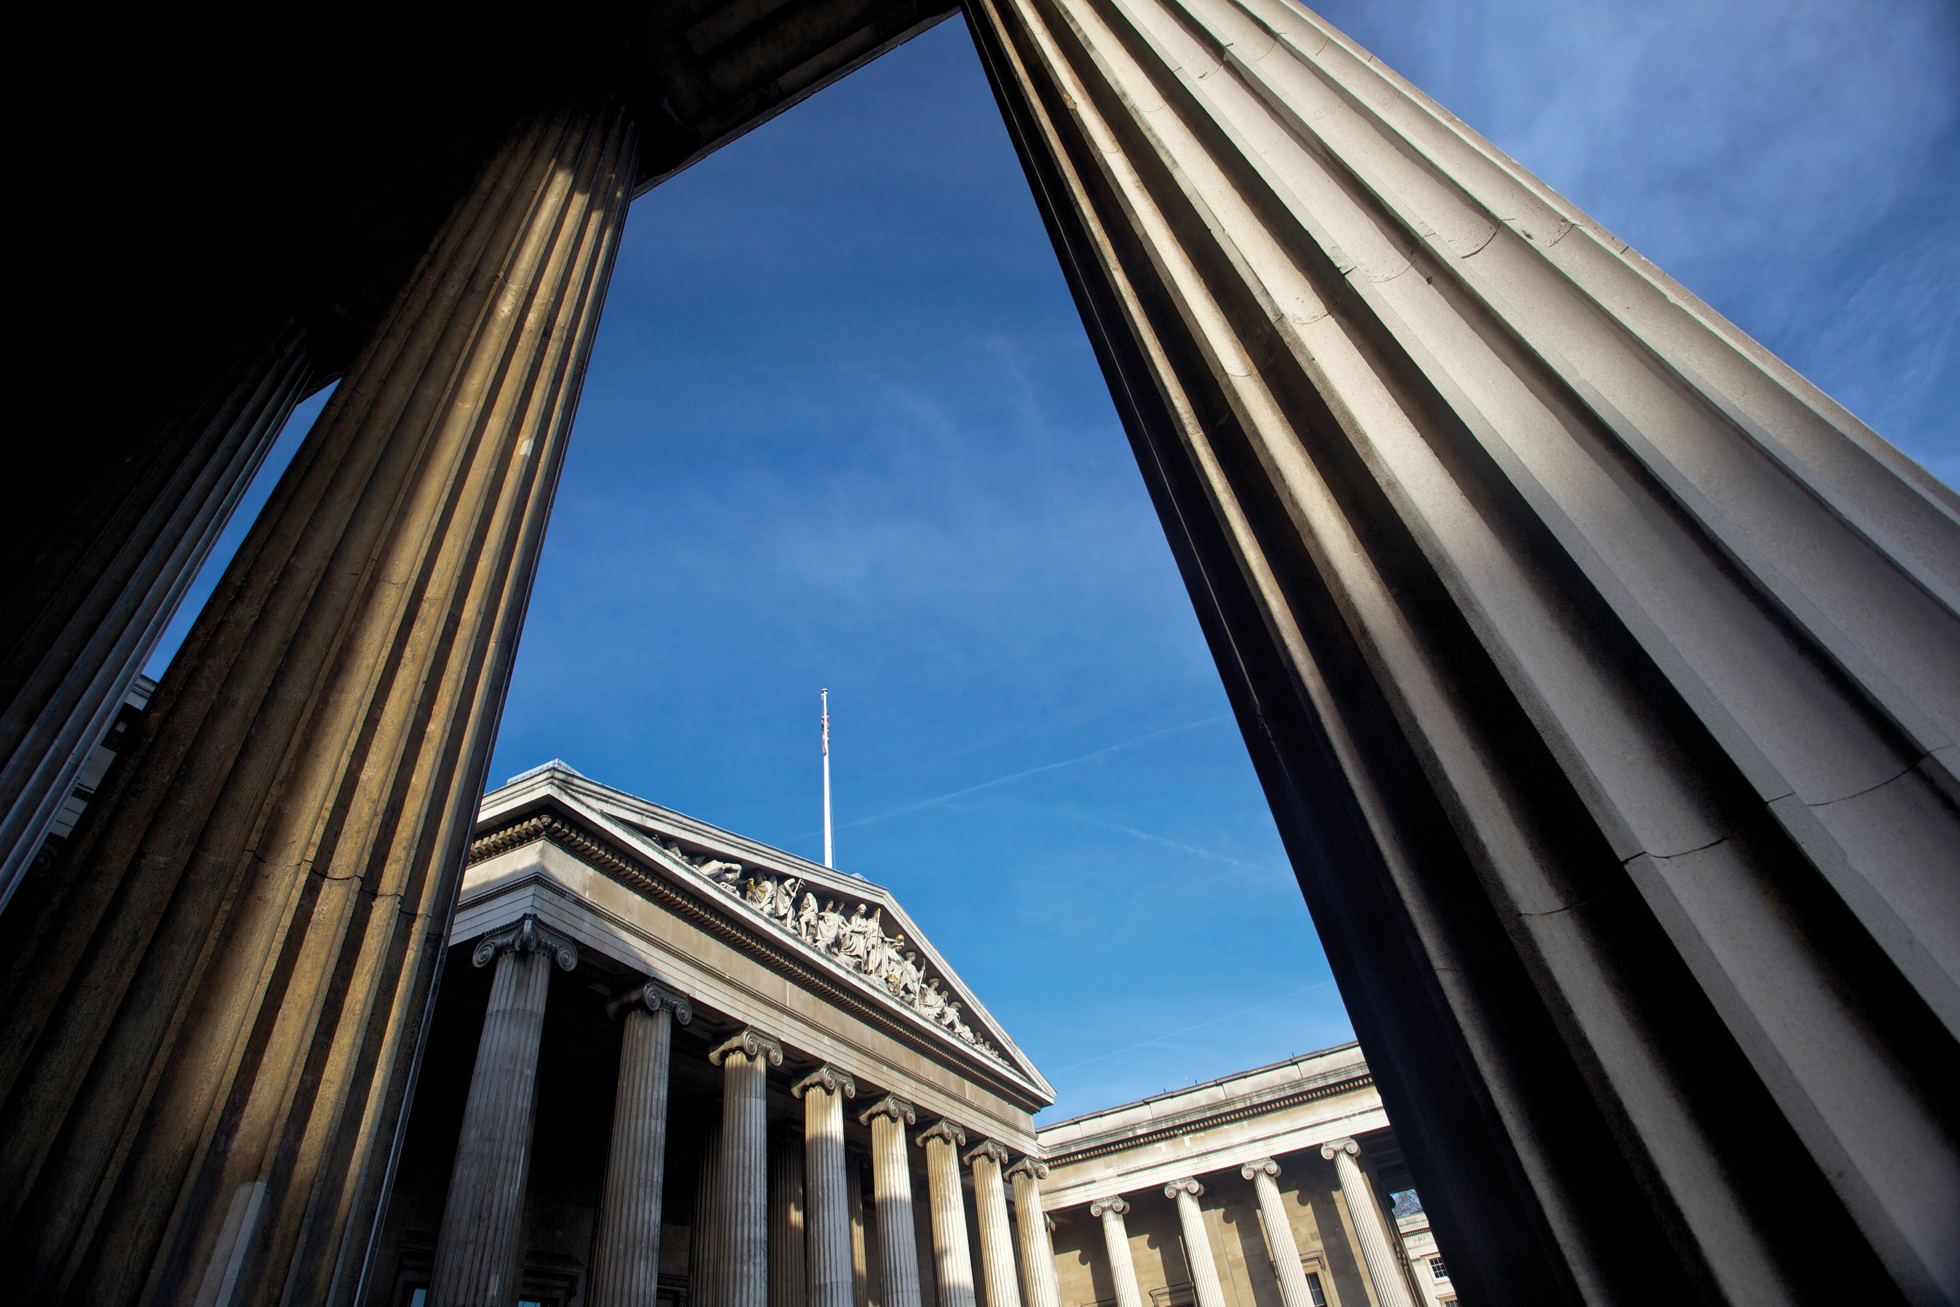 An introduction to Greek architecture – The British Museum Blog